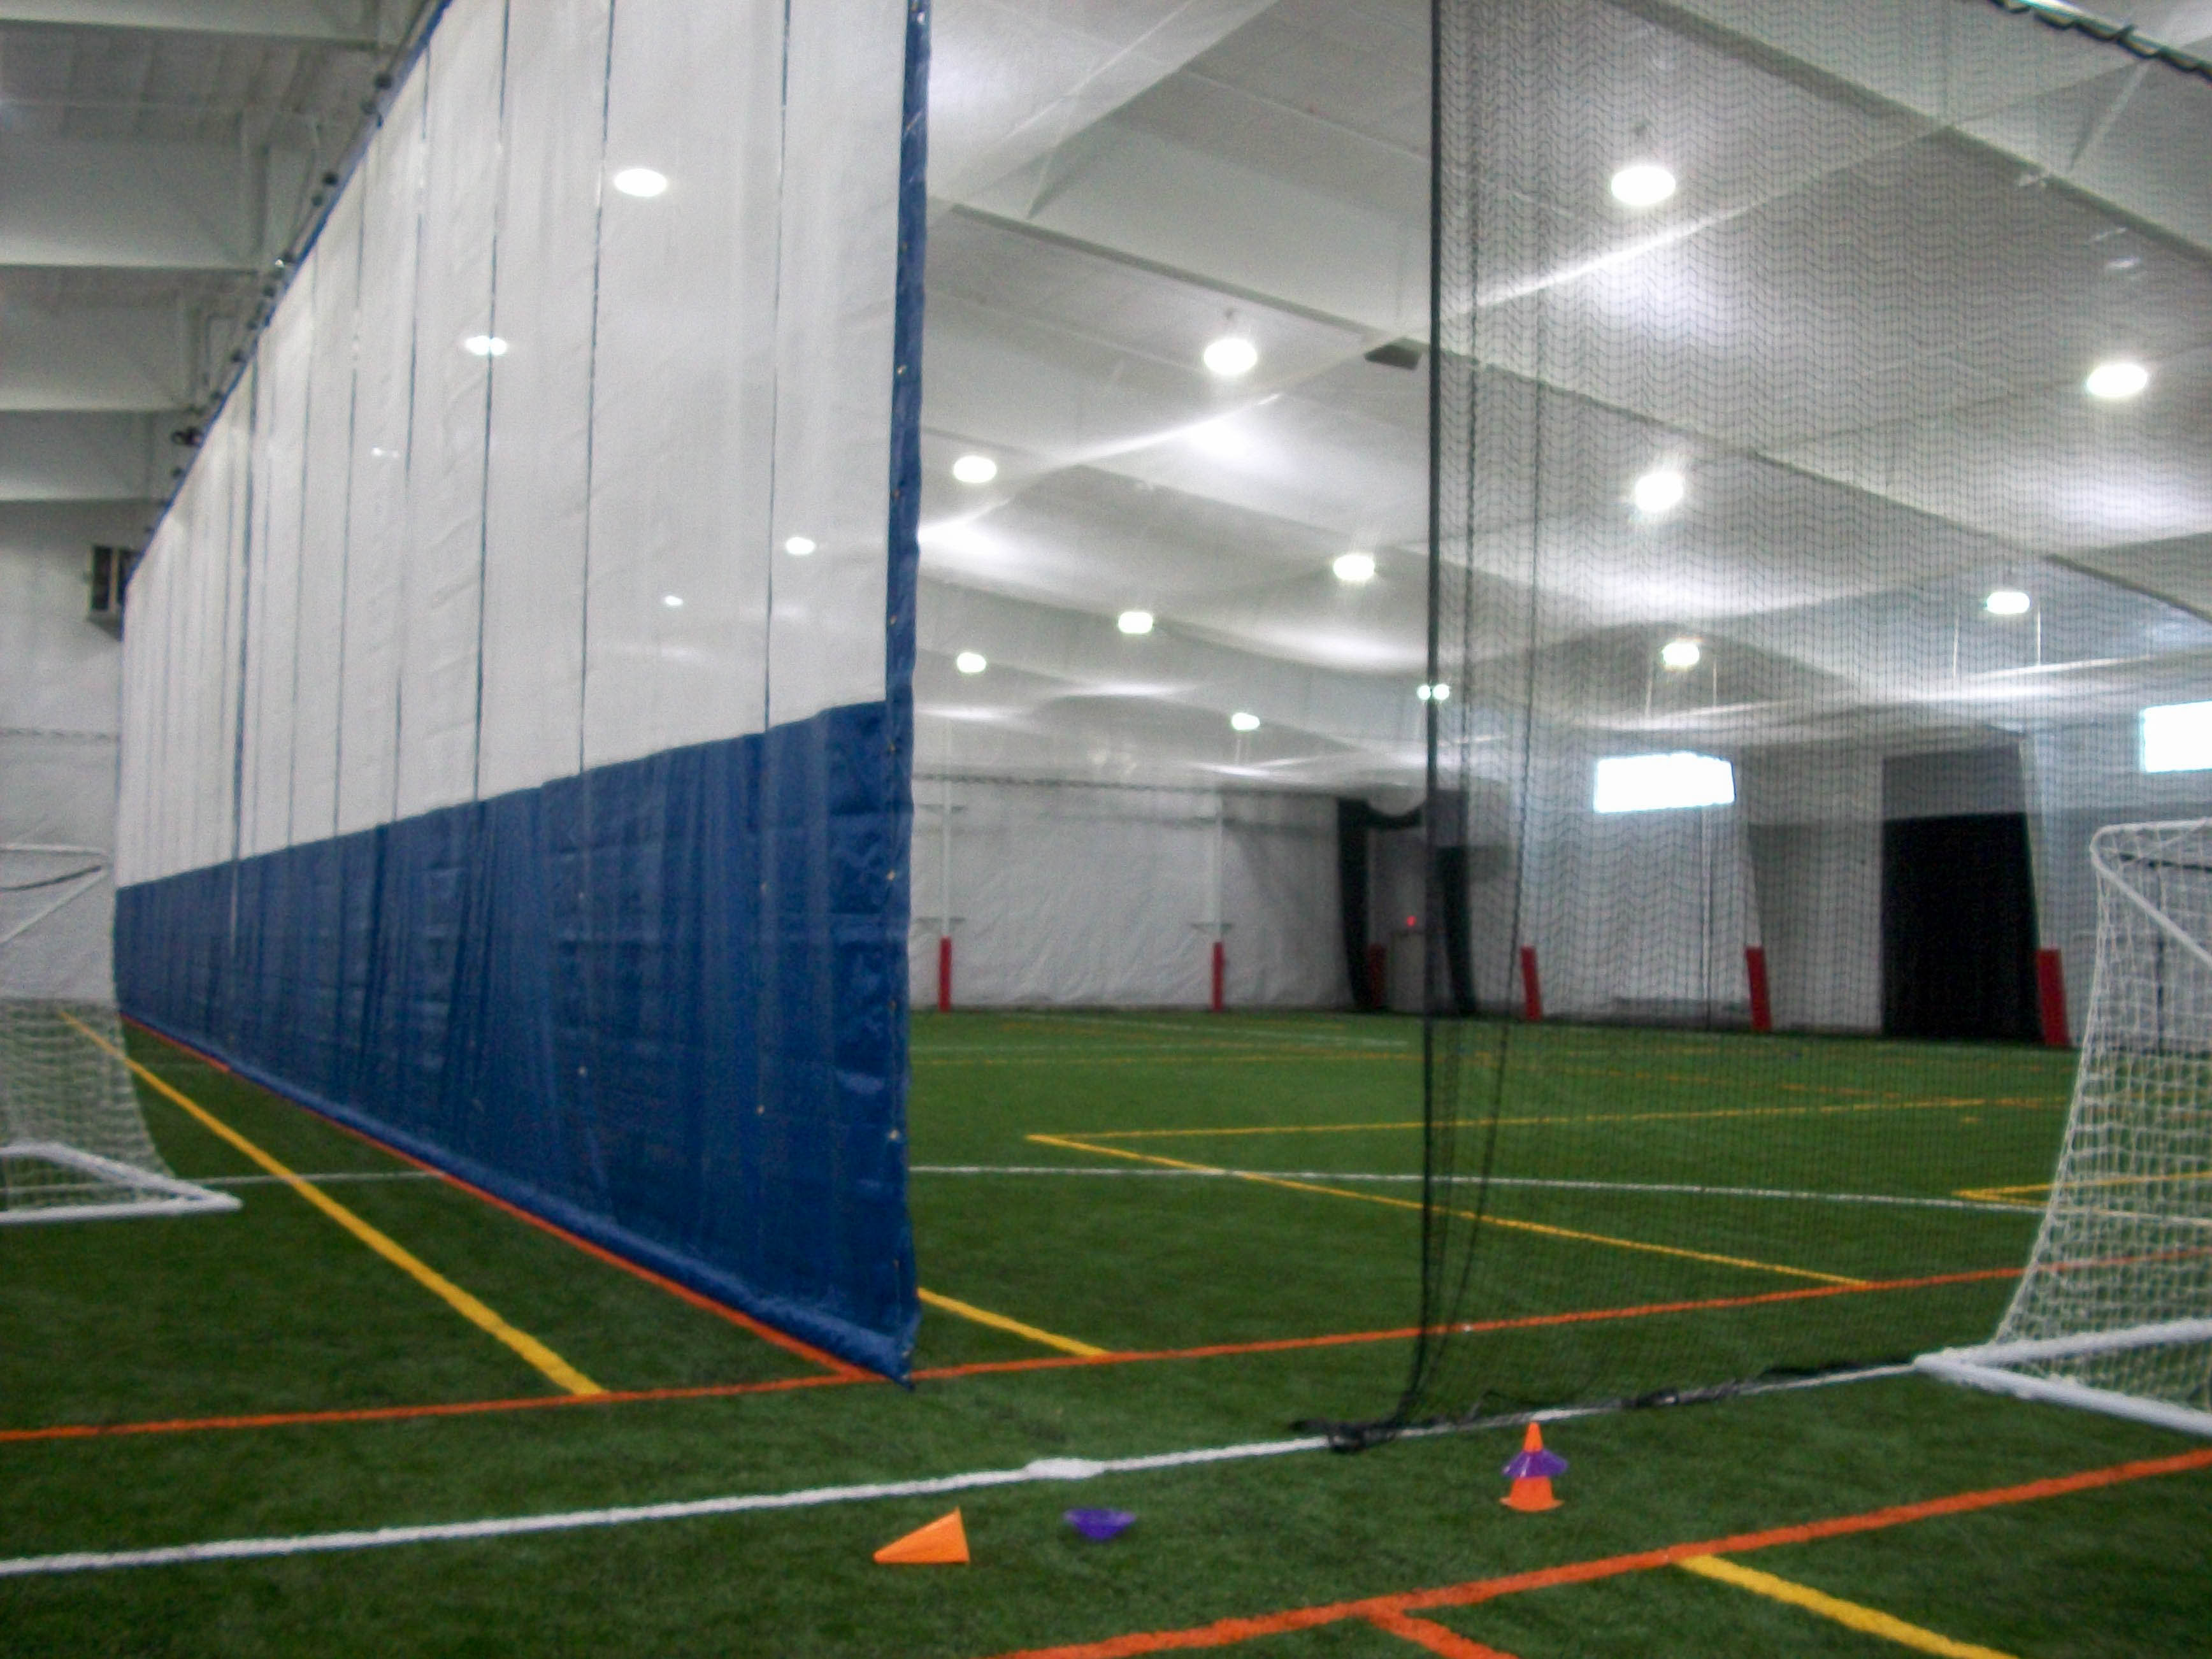 Vermont custom nets multi sport vermont custom nets for Indoor cricket net design